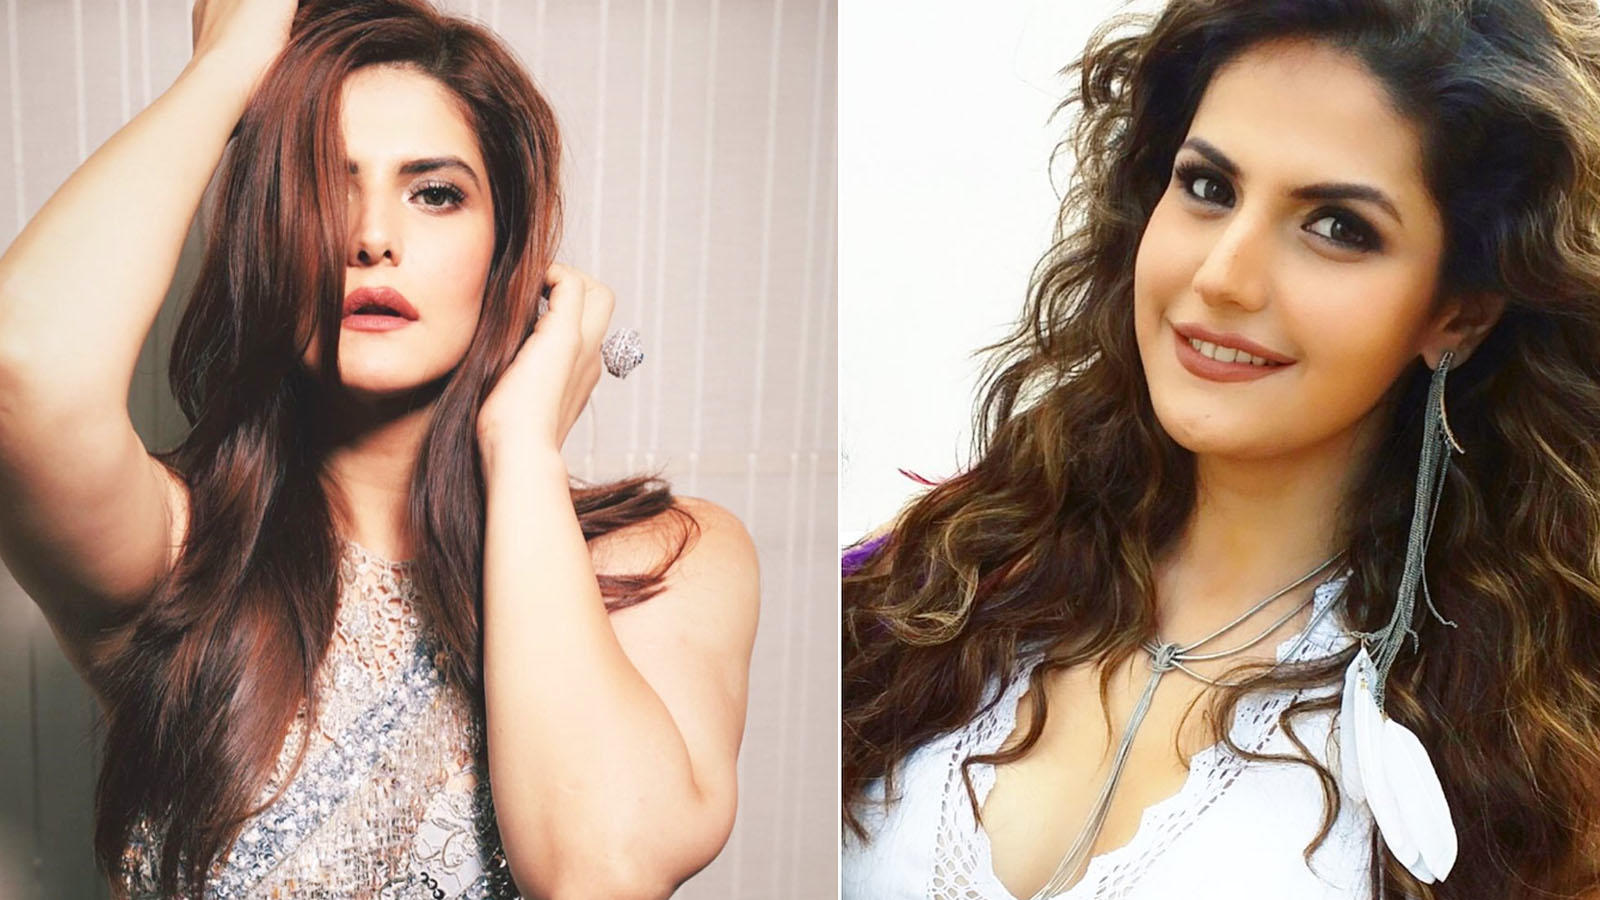 Zareen Khan wants to break out of her 'pretty face' image and be taken seriously, says, 'I want people to see my potential' | Hindi Movie News – Bollywood – Times of India